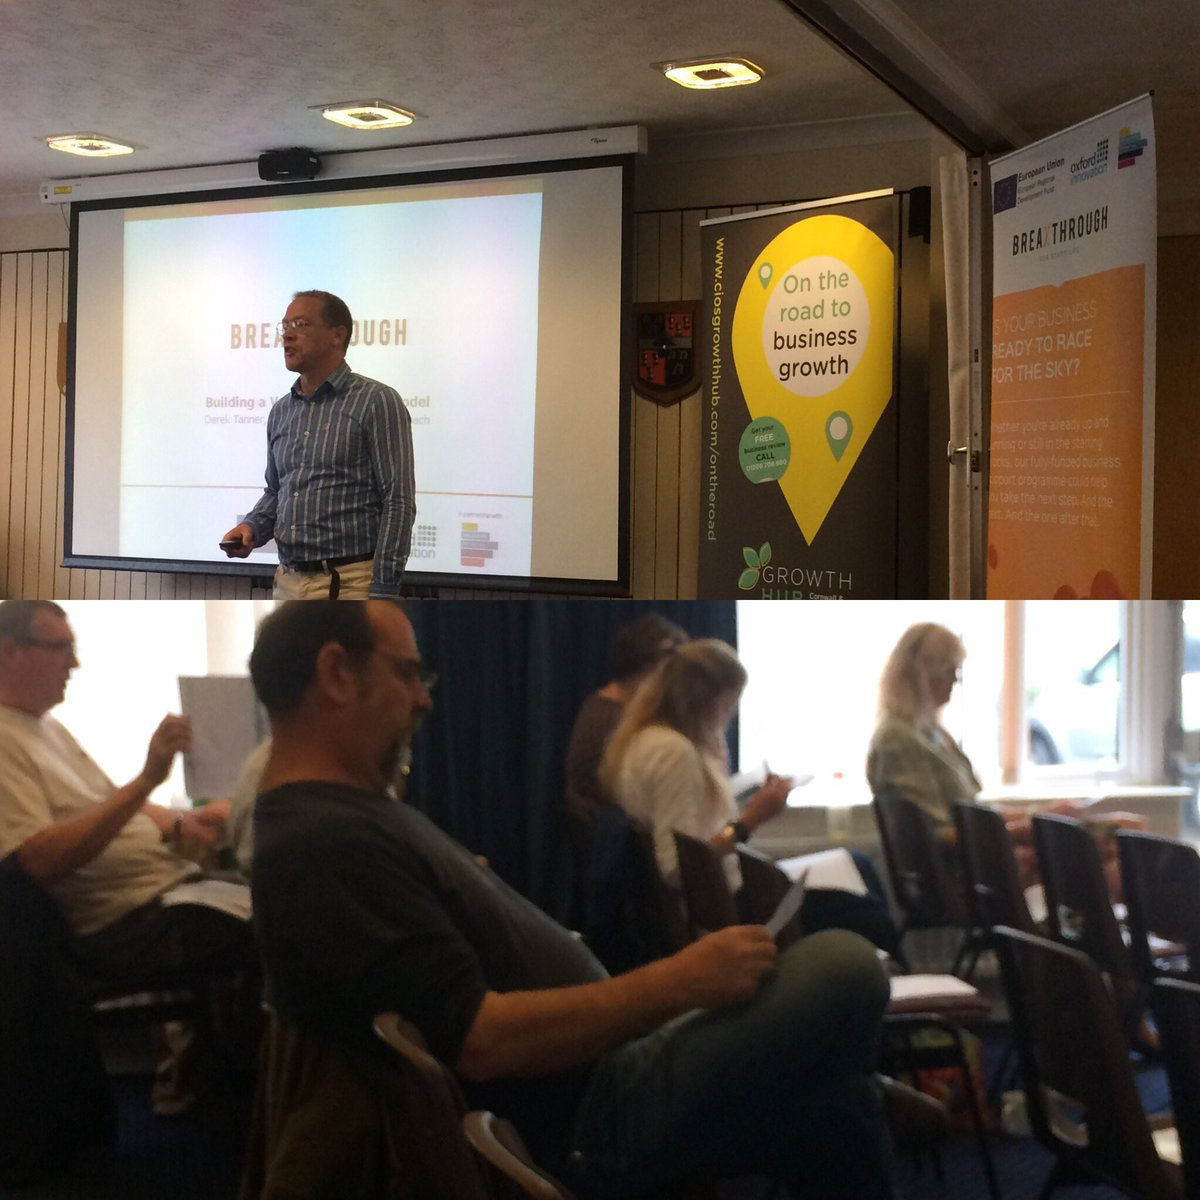 Derek Tanner @oxinnovation @AskBreakthrough talking about Building a Valuable Business Model in Callington #TownTakeover <br>http://pic.twitter.com/05CjZ87GSo